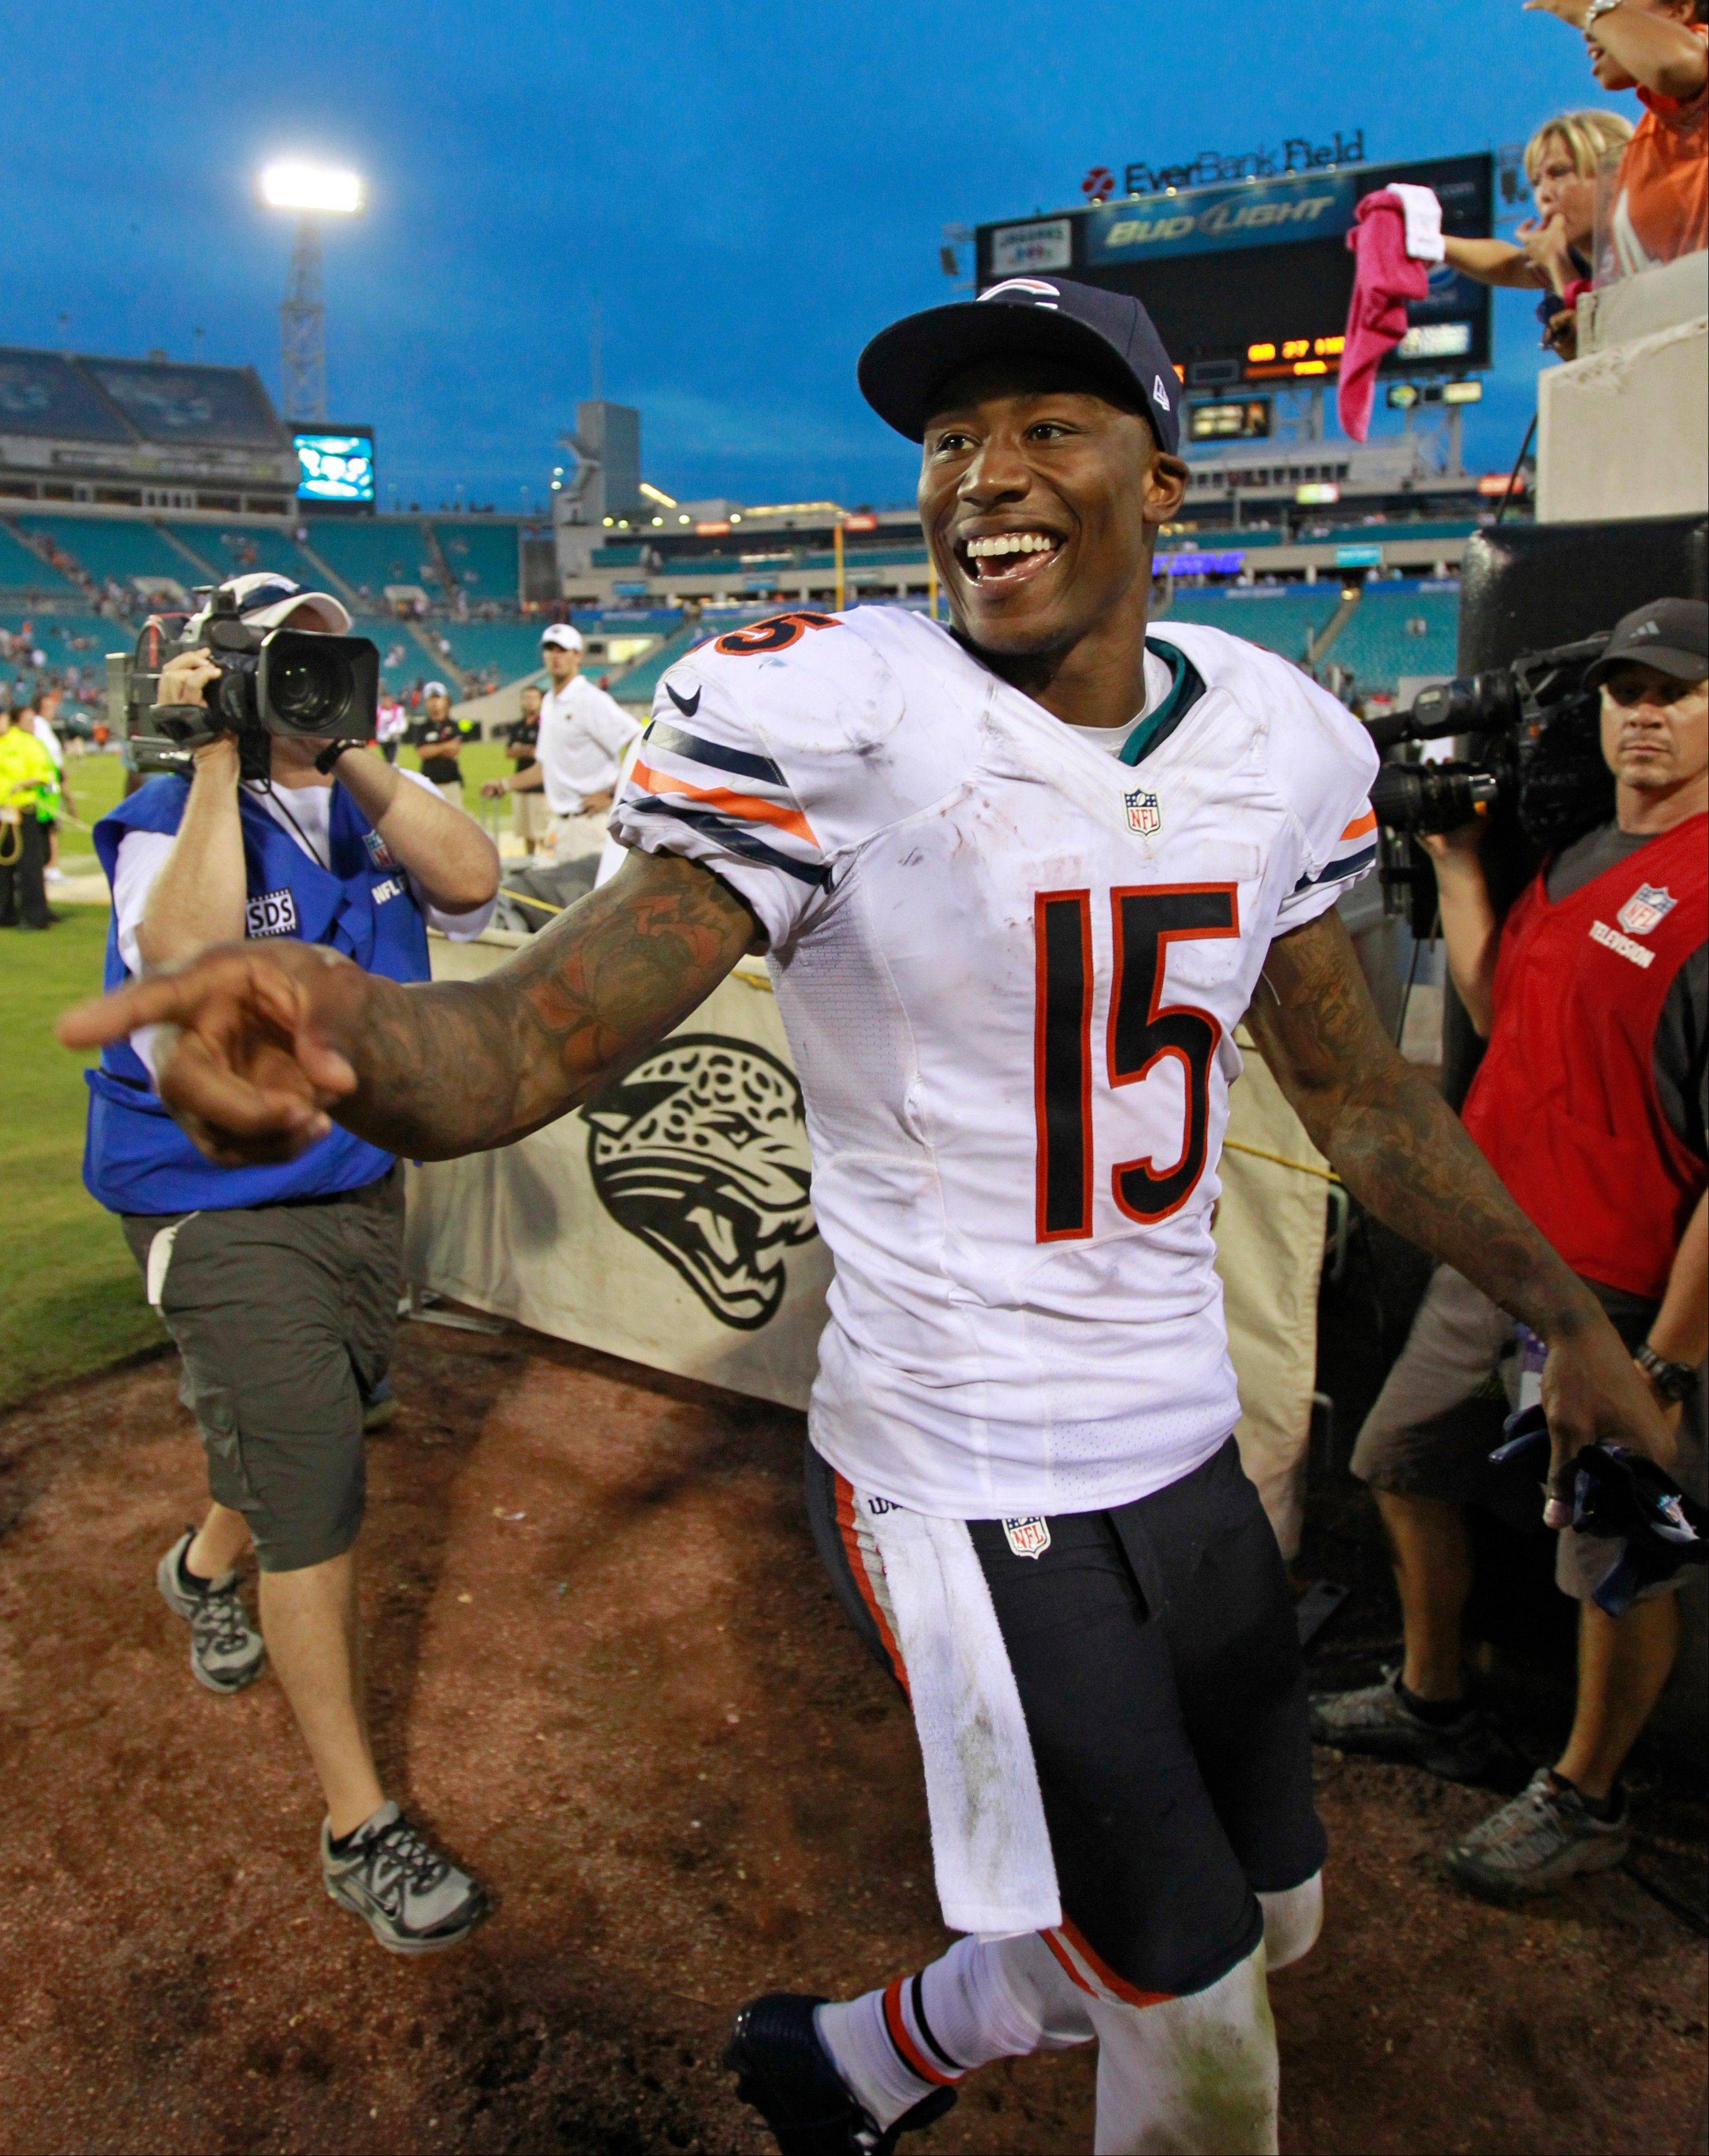 Bears receiver Brandon Marshall points to Bears fans as he comes off the field after defeating the Jacksonville Jaguars 41-3 in an NFL football game, Sunday, Oct. 7, 2012, in Jacksonville, Fla.